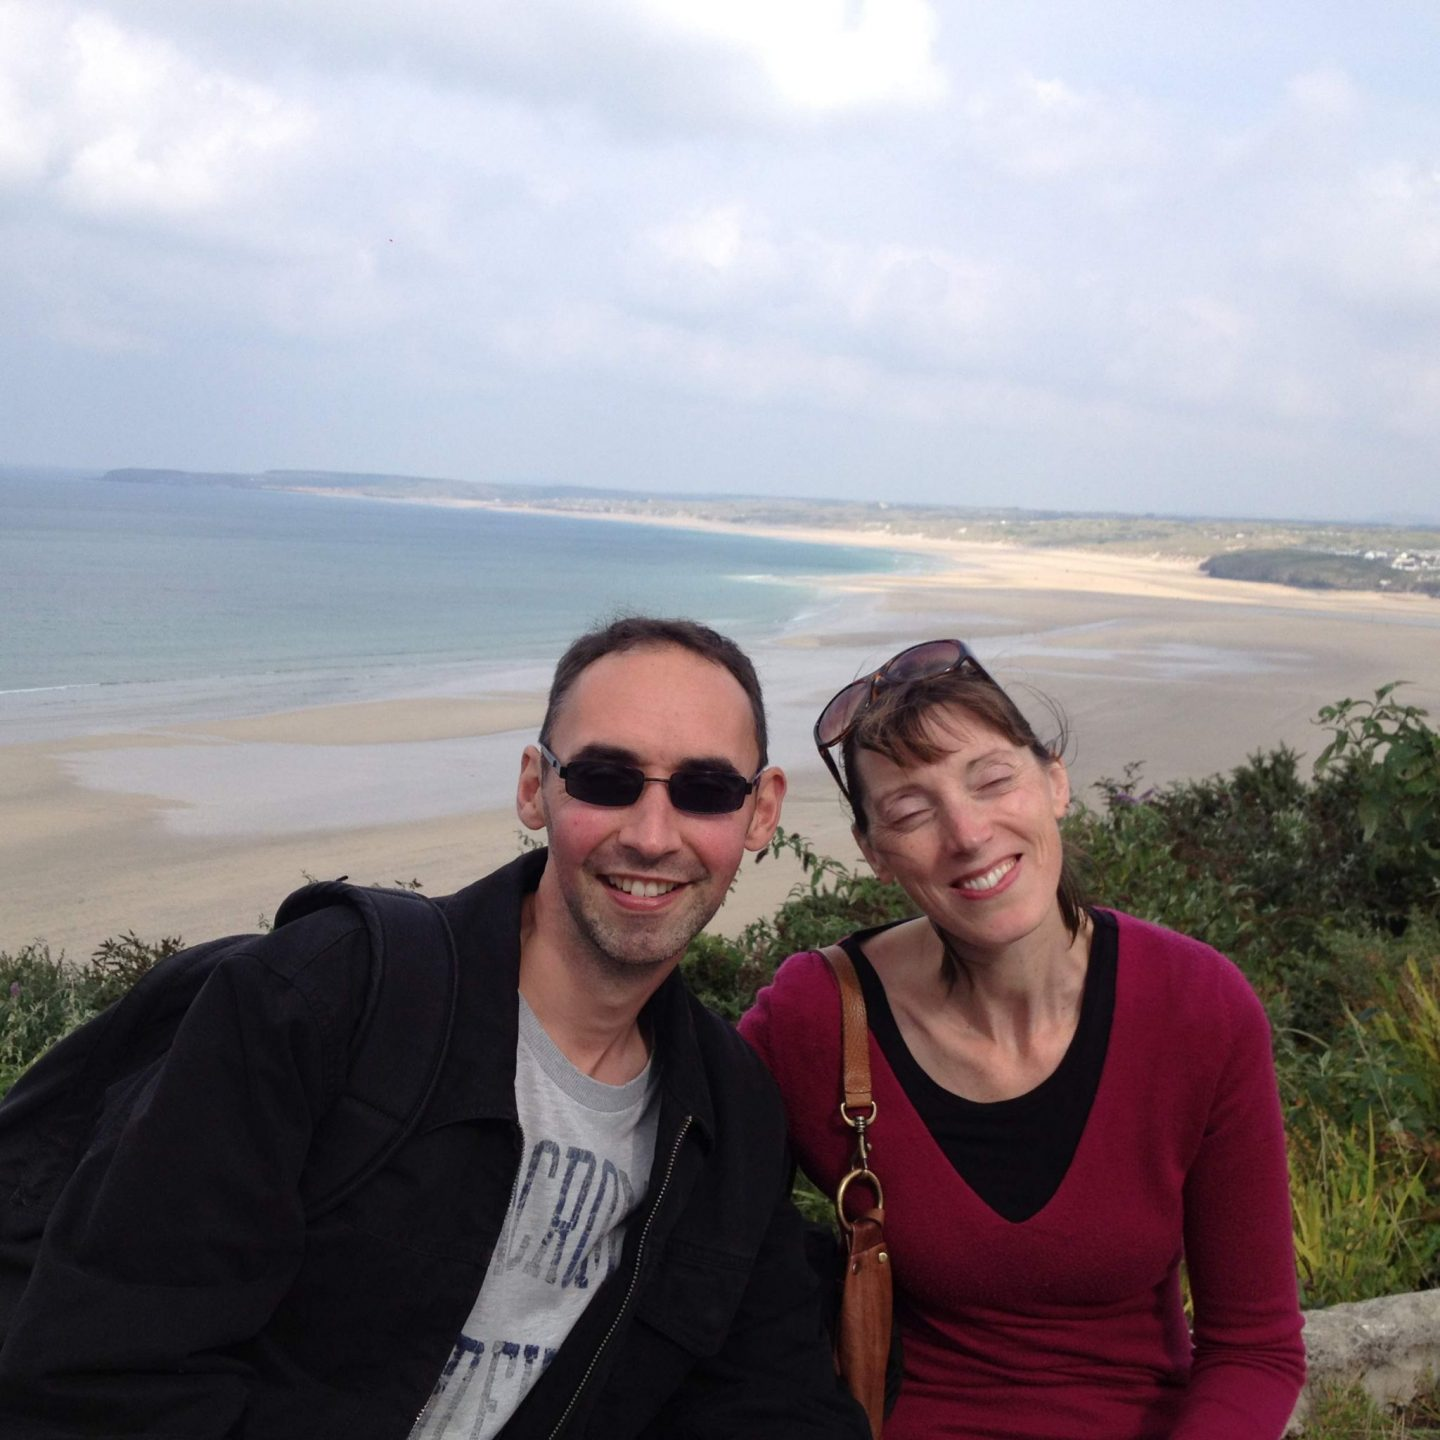 Mum and Paul at Porthkidney Beach, Cornwall